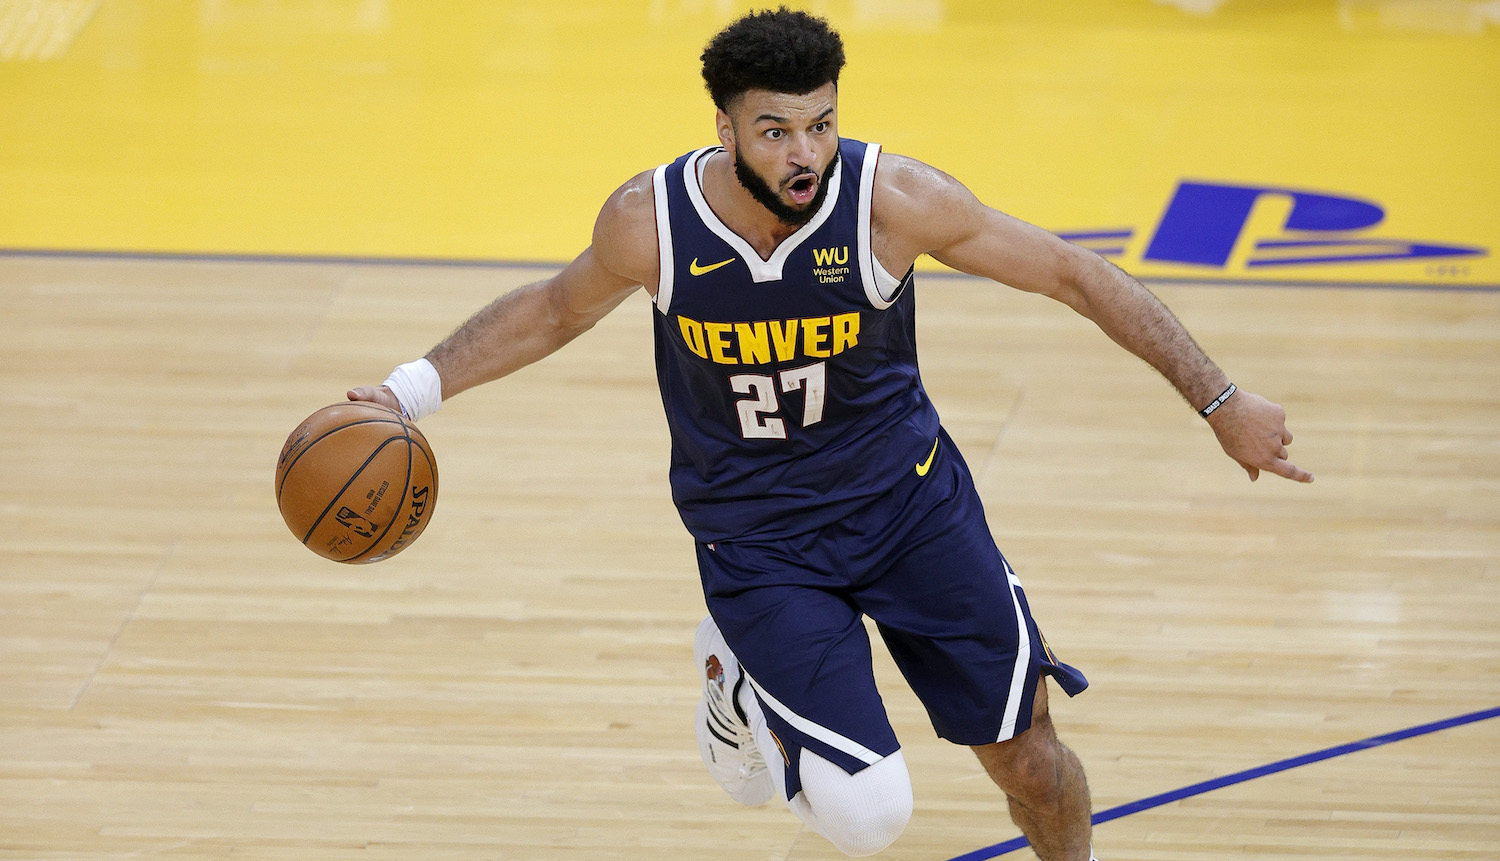 SAN FRANCISCO, CALIFORNIA - DECEMBER 12: Jamal Murray #27 of the Denver Nuggets in action against the Golden State Warriors during their NBA preseason game at Chase Center on December 12, 2020 in San Francisco, California. NOTE TO USER: User expressly acknowledges and agrees that, by downloading and or using this photograph, User is consenting to the terms and conditions of the Getty Images License Agreement. (Photo by Ezra Shaw/Getty Images)